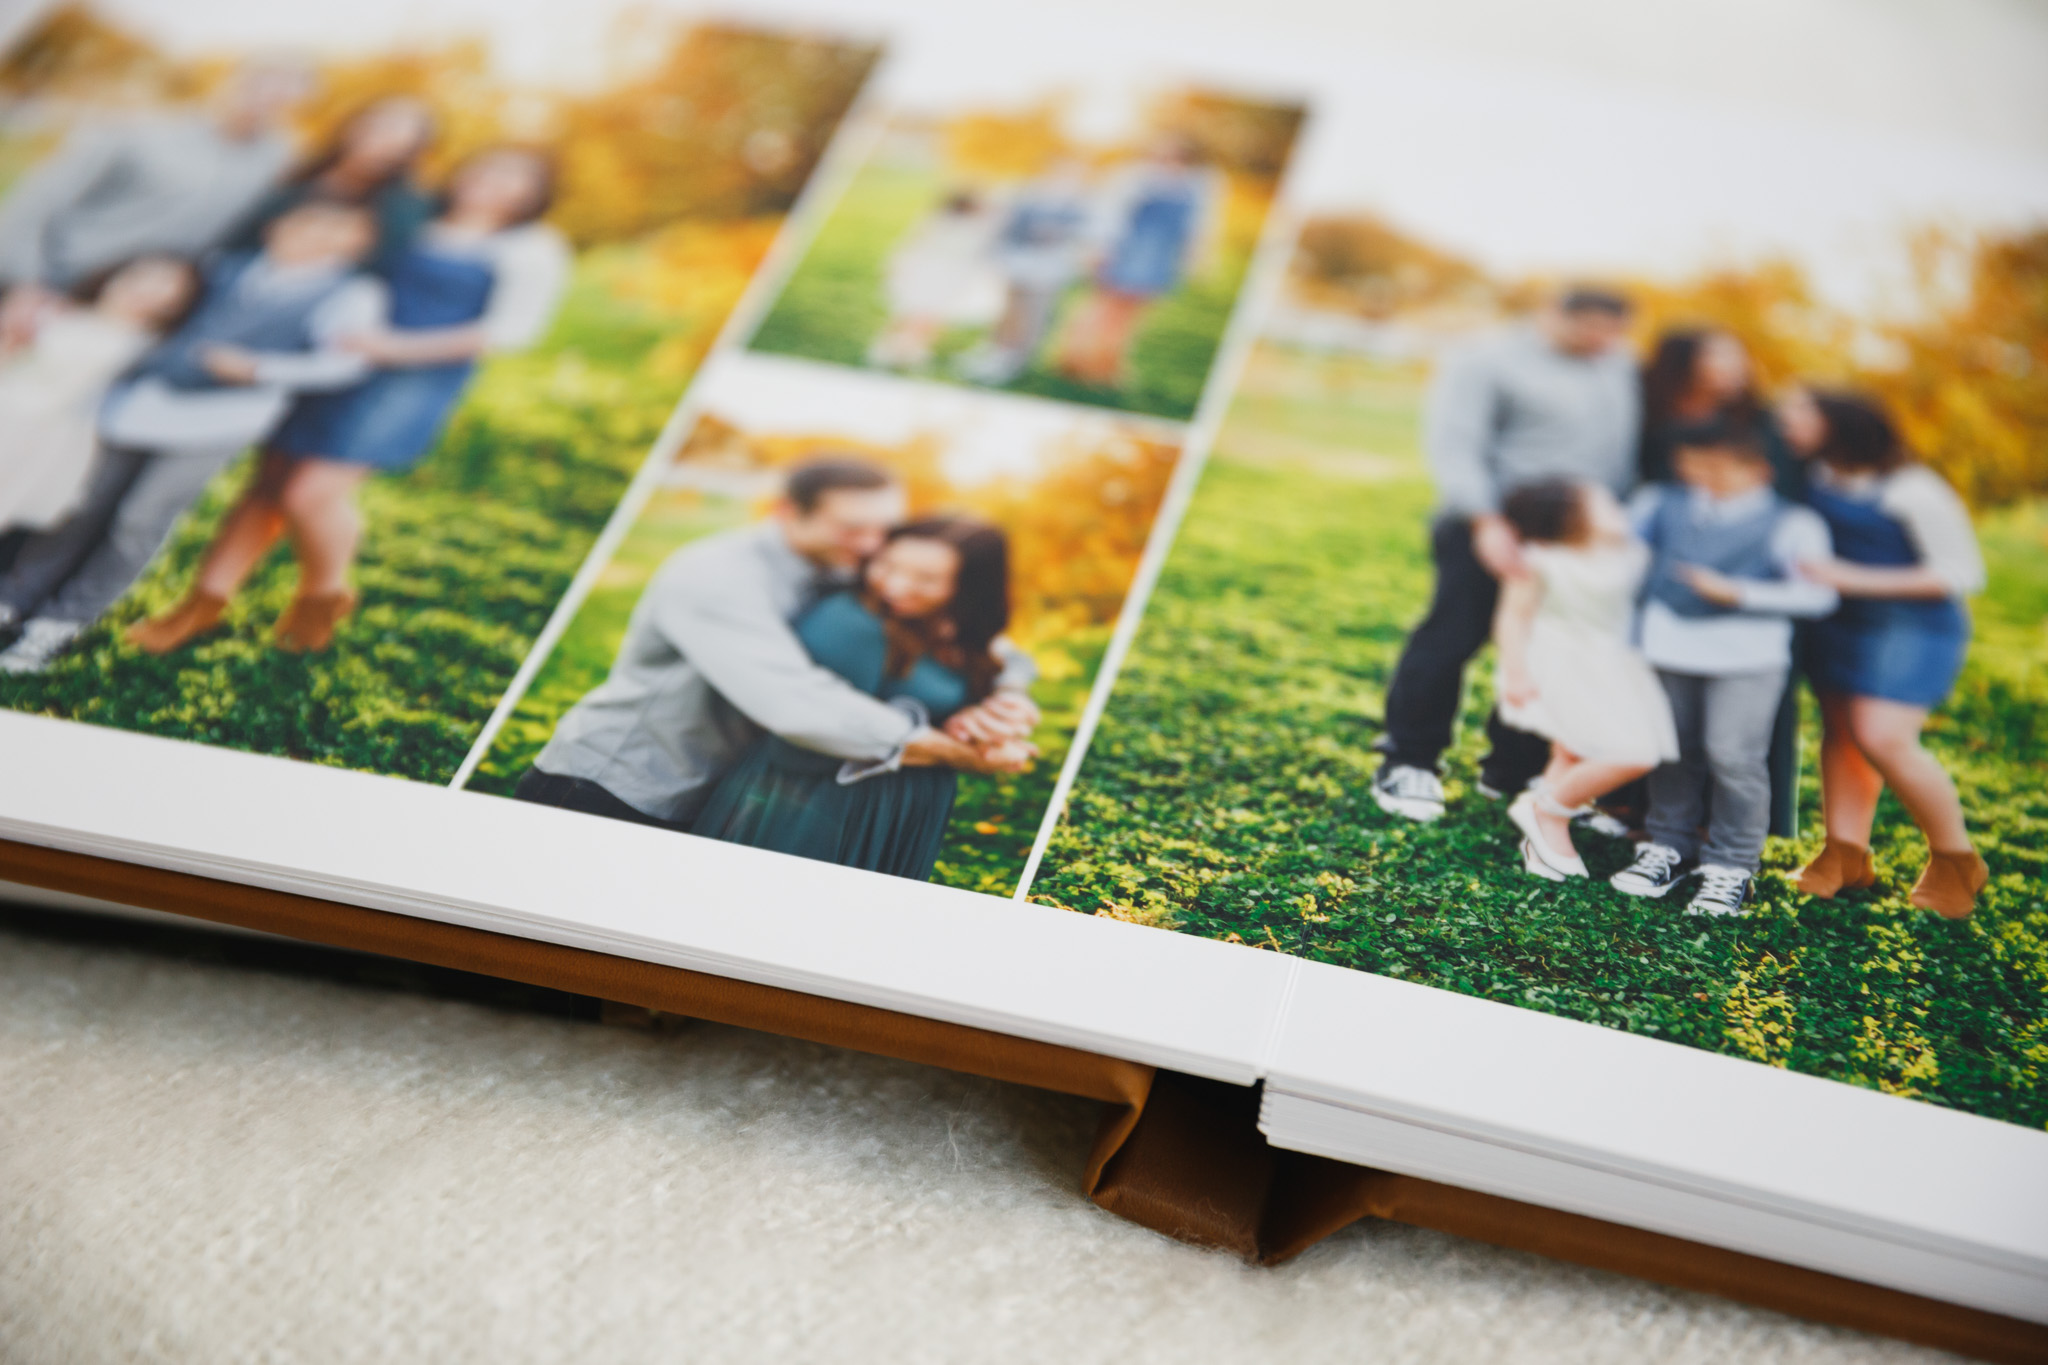 BookAlbumSamples2019-005__JulieGriffinPhotography.jpg